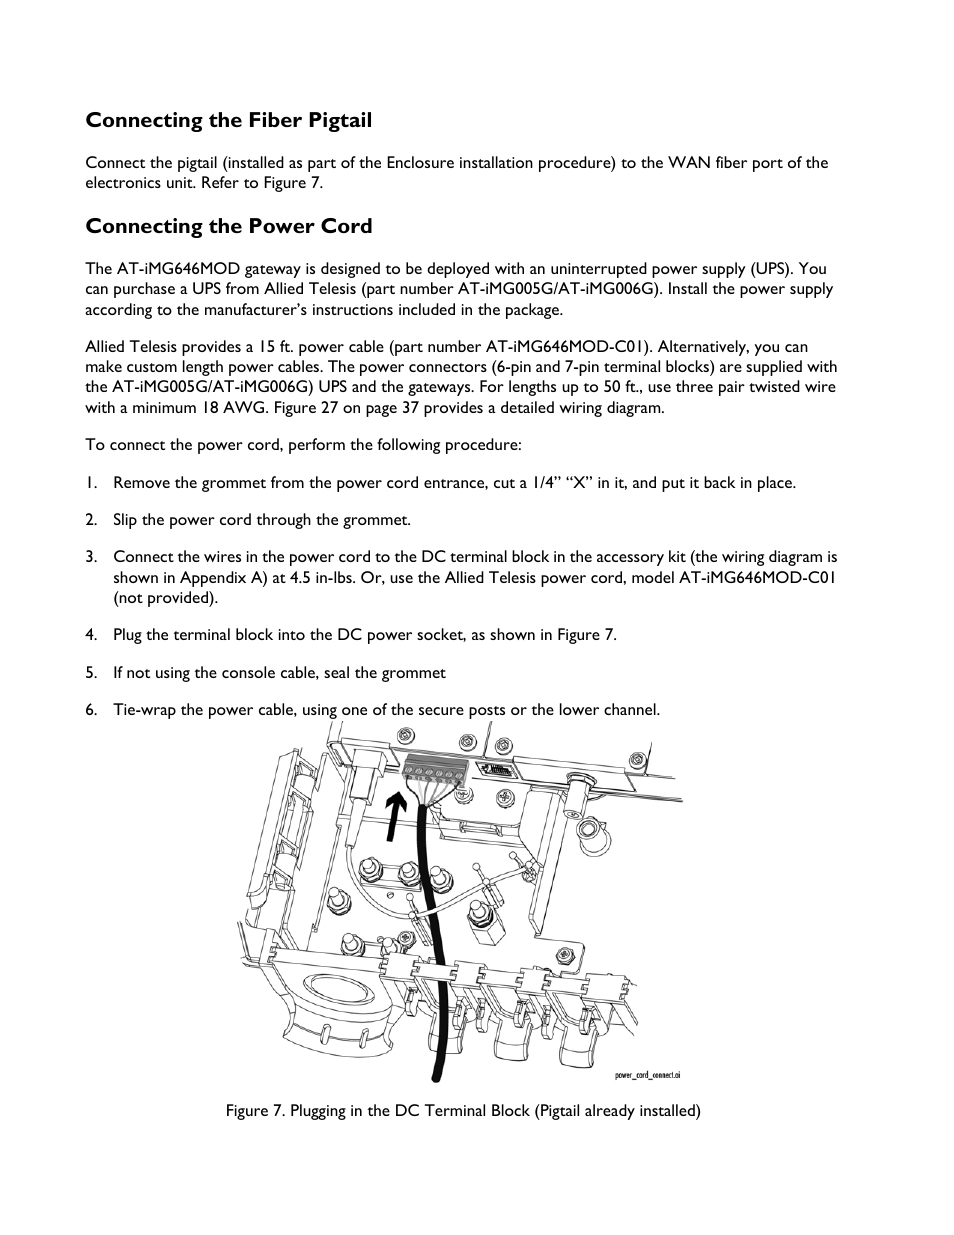 connecting the fiber pigtail, connecting the power cord allied four terminal wire connector diagram connecting the fiber pigtail, connecting the power cord allied telesis at img6x6mod electronics unit user manual page 14 46